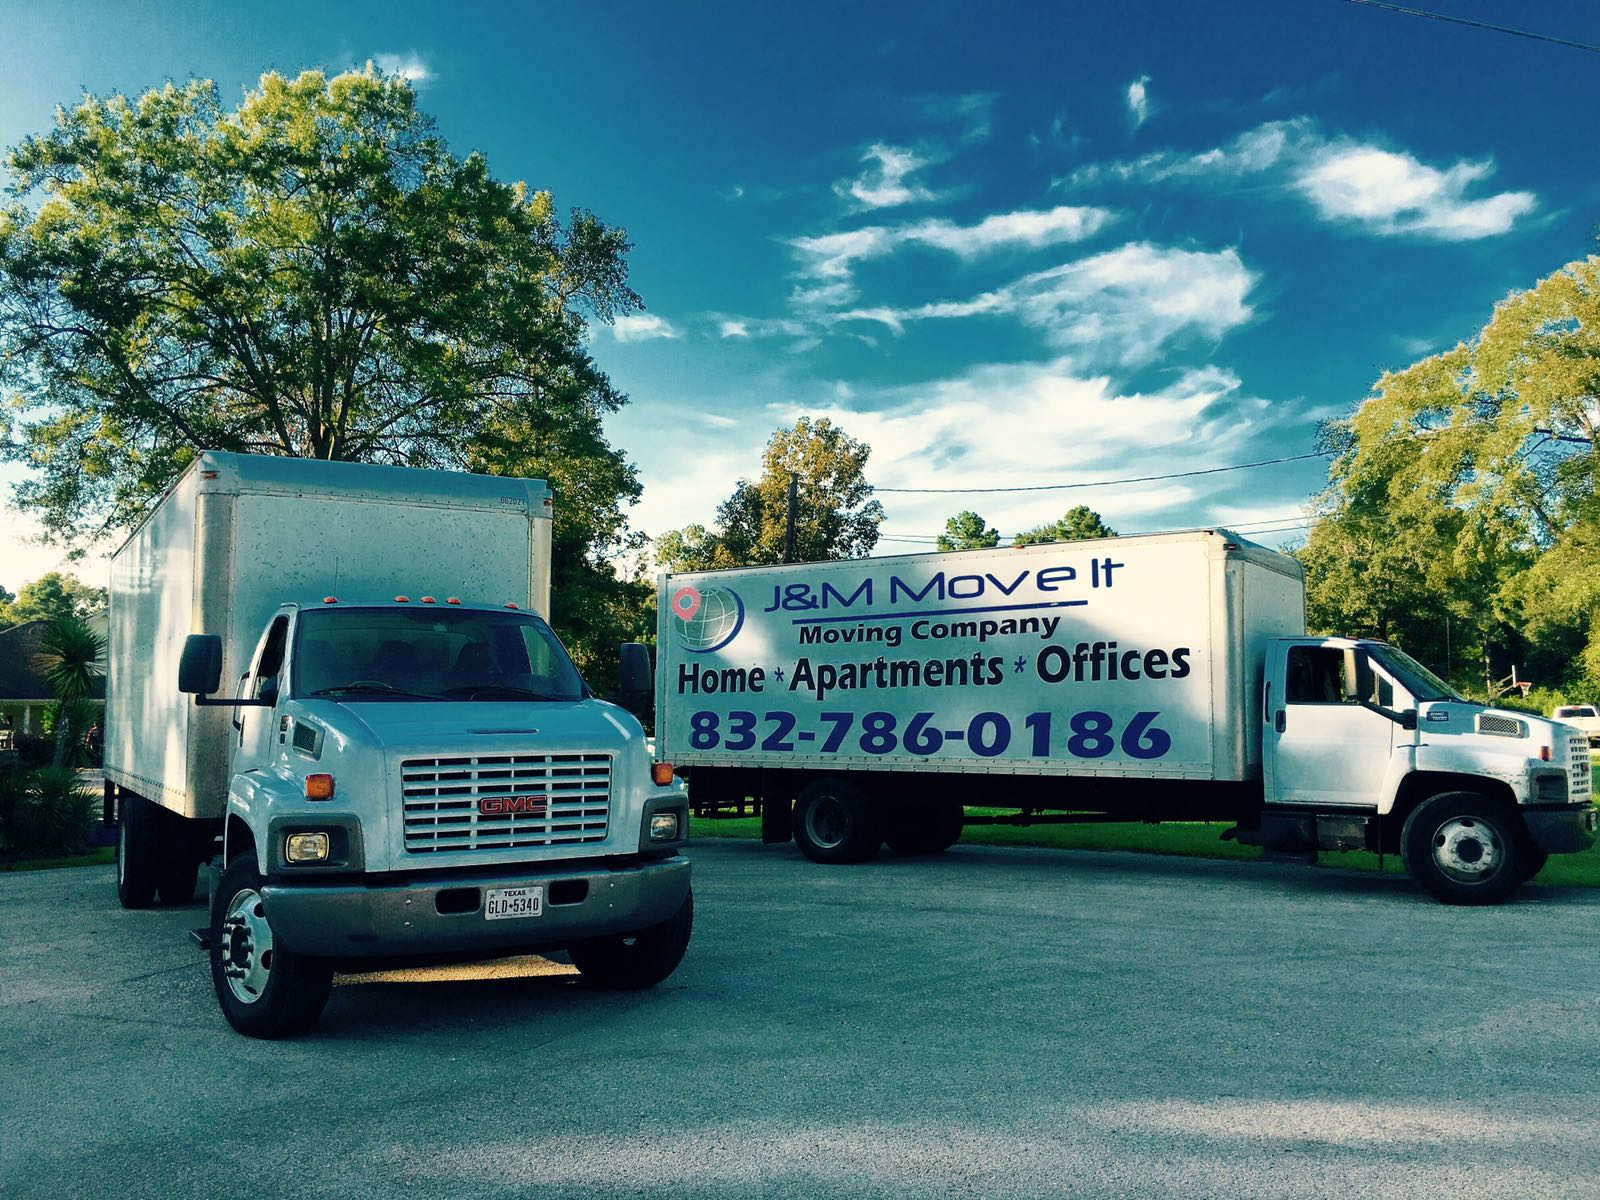 Need to Move-It? Let us do it!